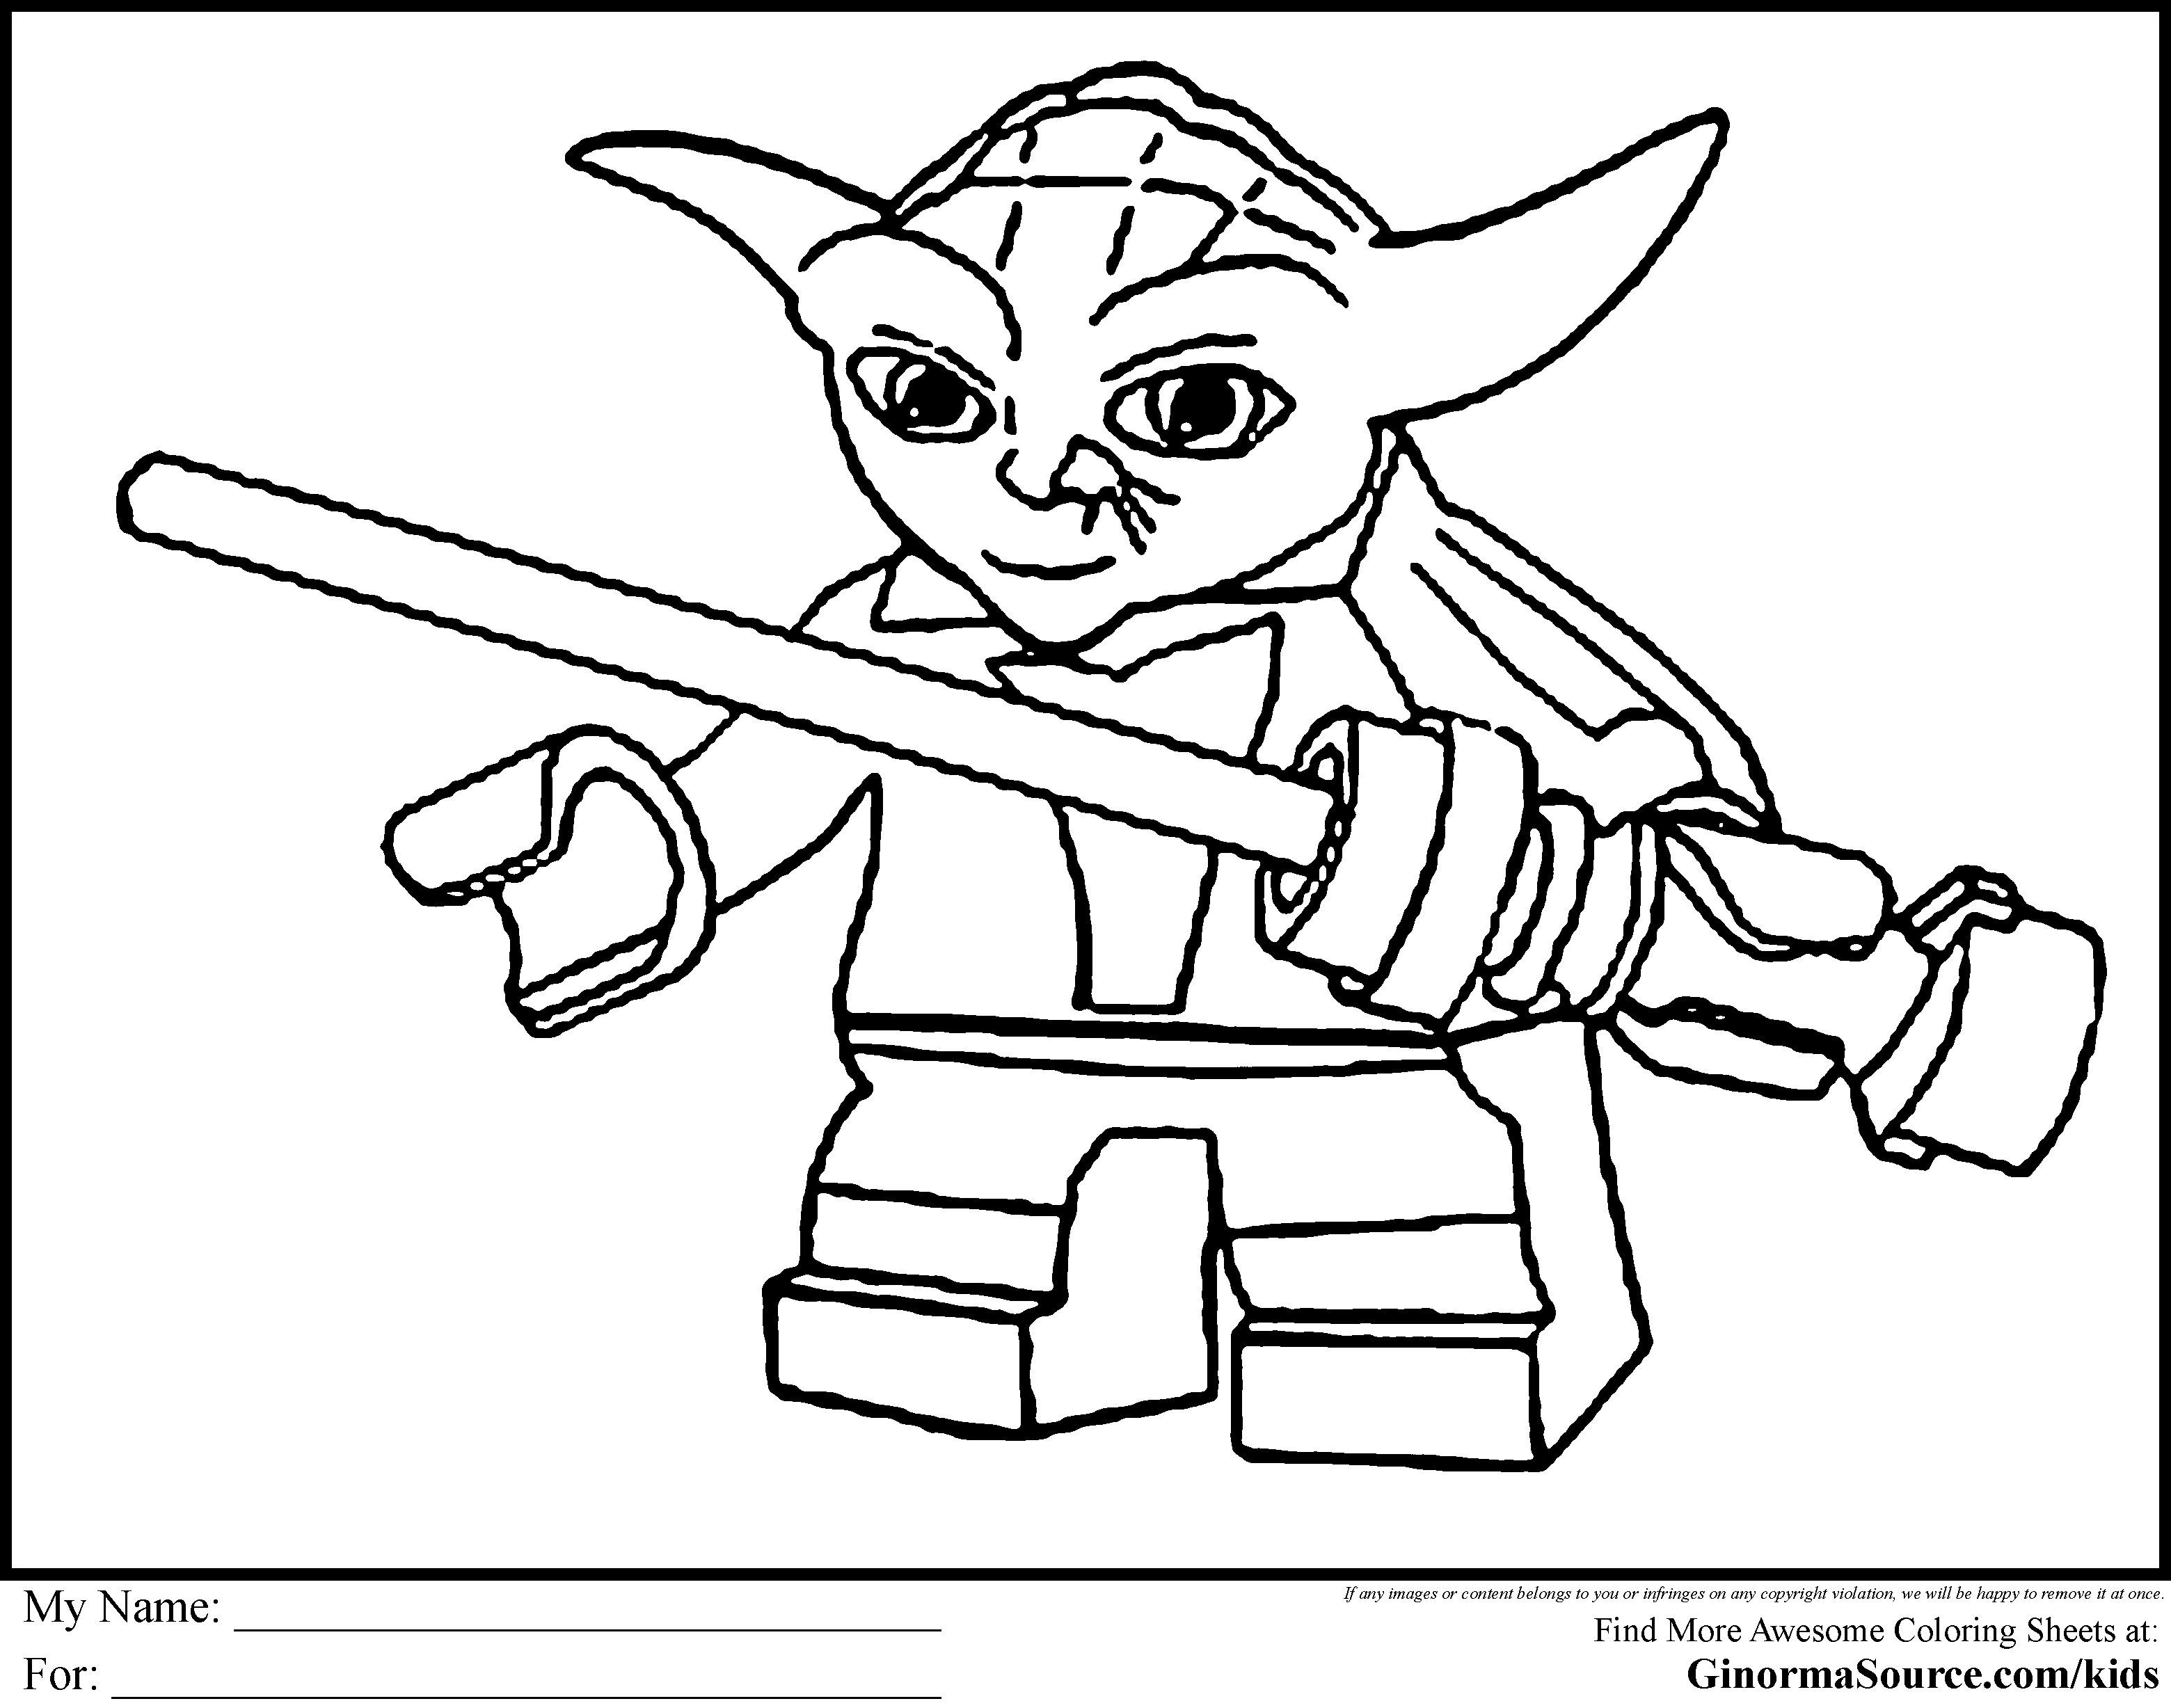 Lego Coloring Pages Starwars Yoda Gif 3 120 2 455 Pixels Lego Coloring Pages Superhero Coloring Pages Lego Coloring